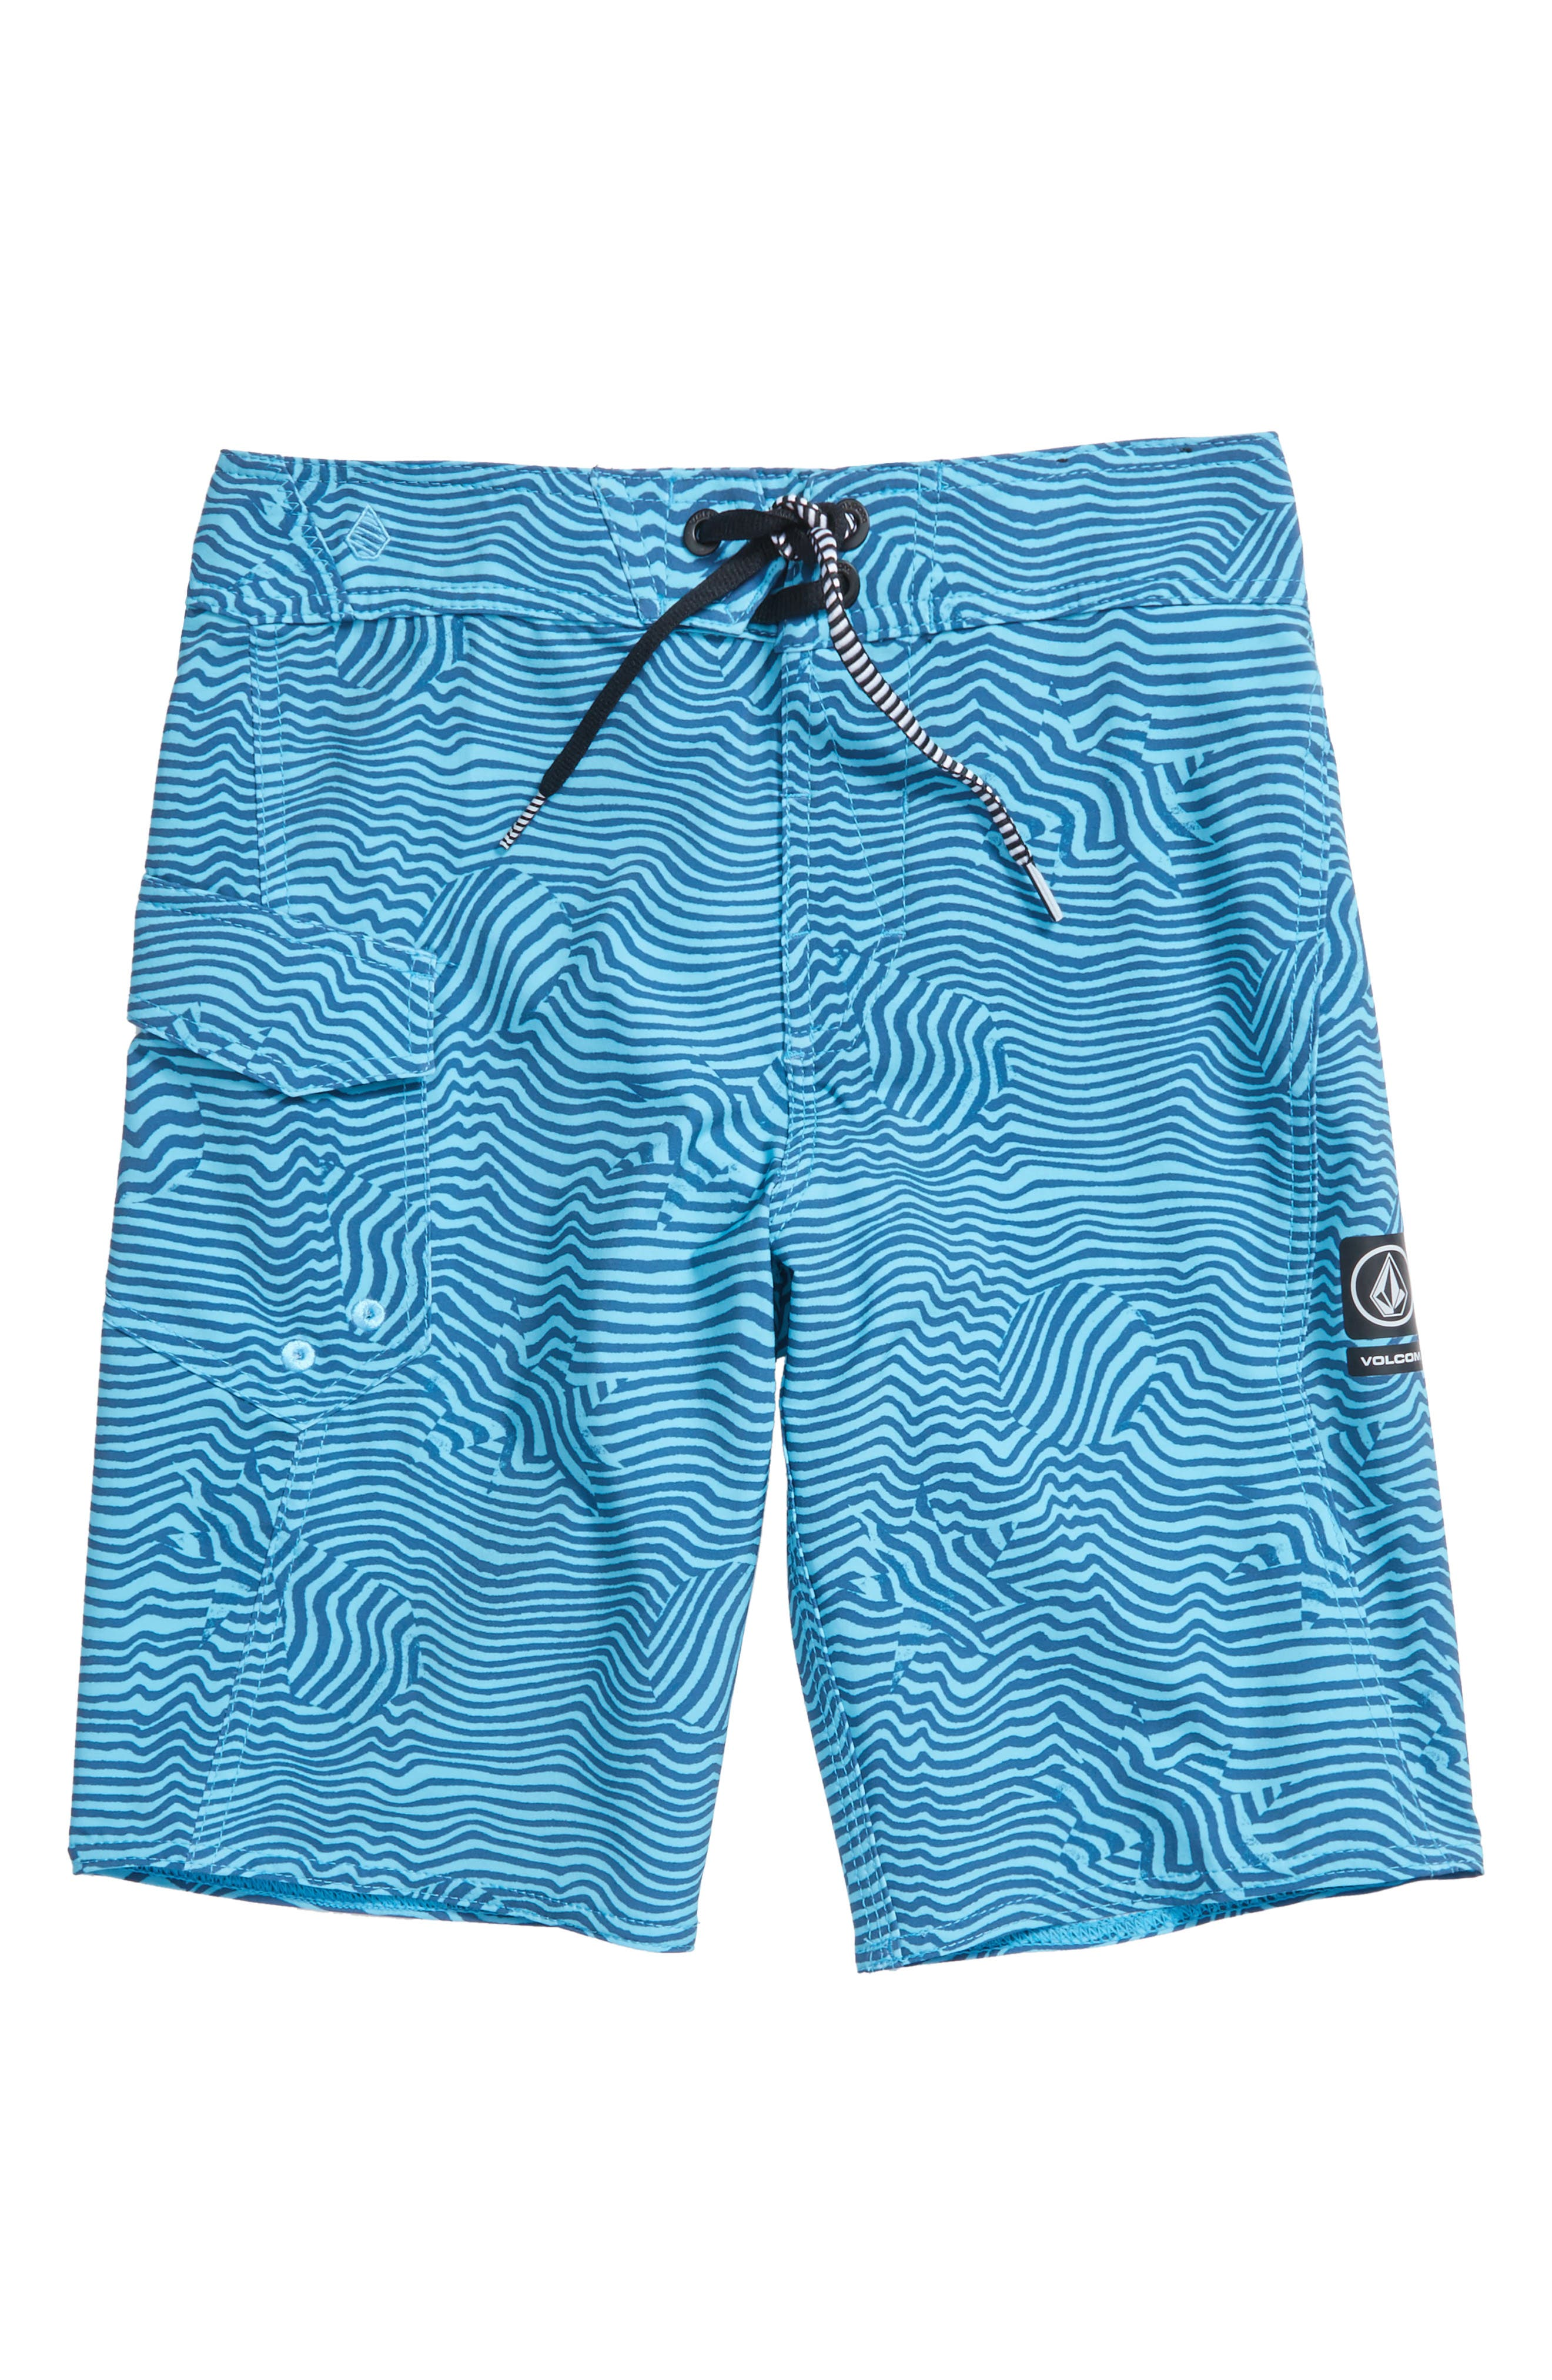 VOLCOM Magnetic Stone Board Shorts